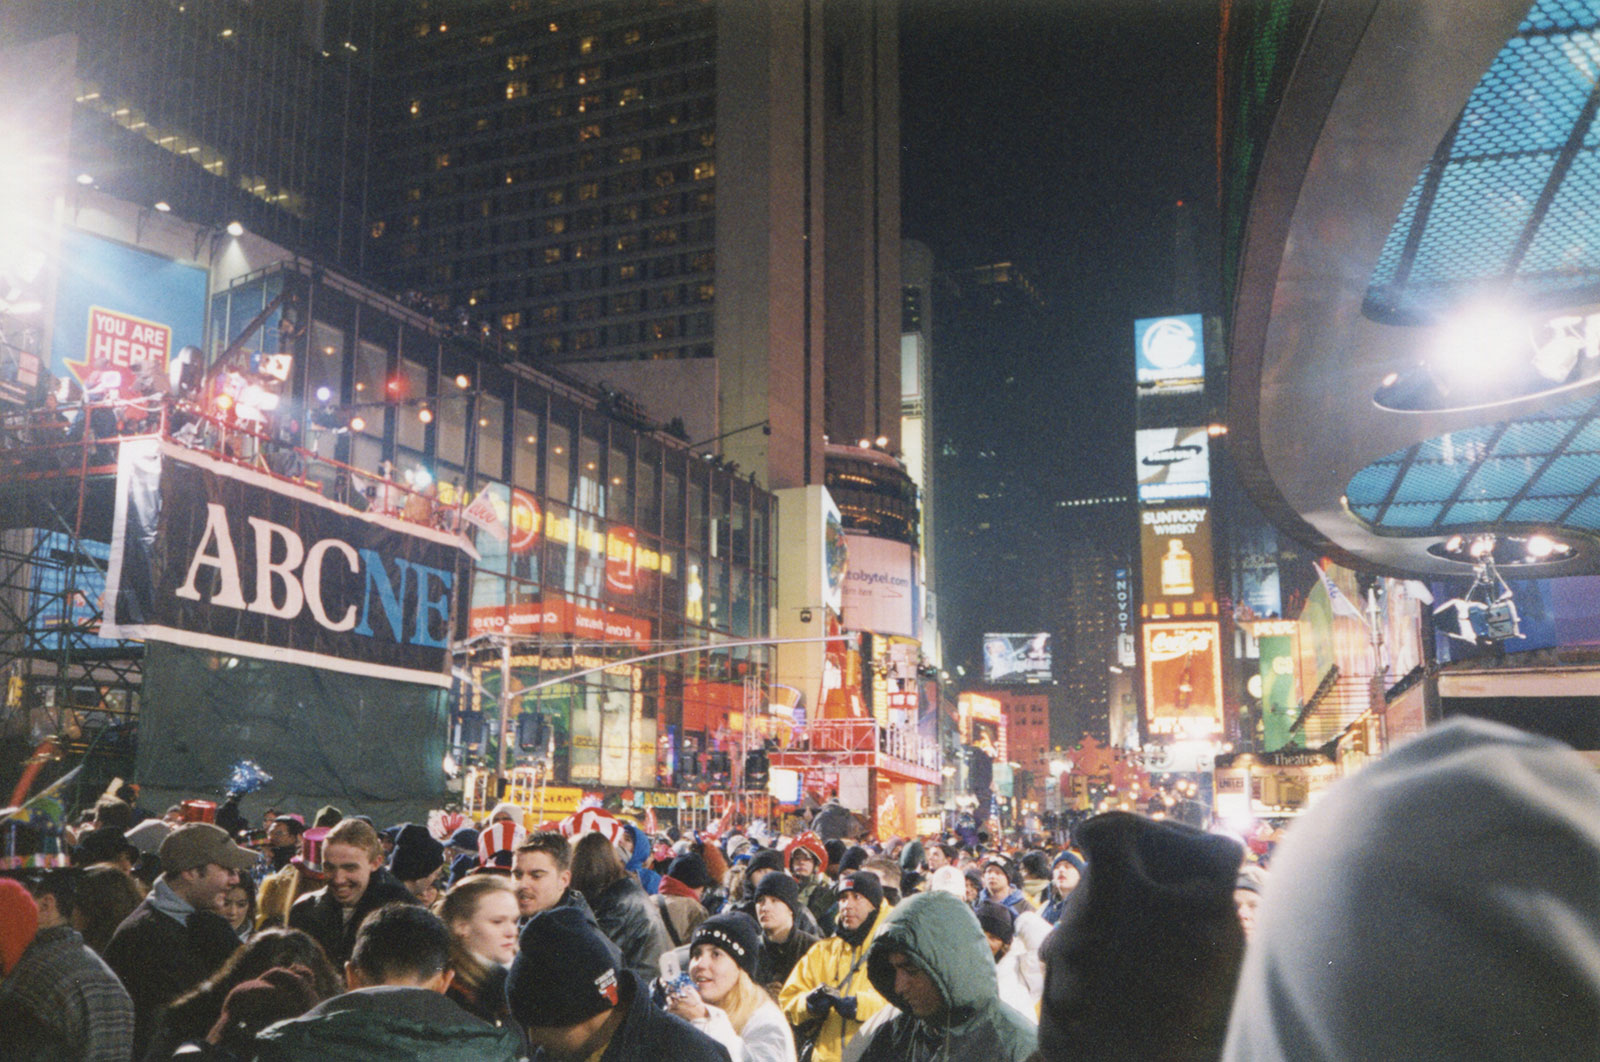 New Years Eve, 1999-2000, Times Square, NYC